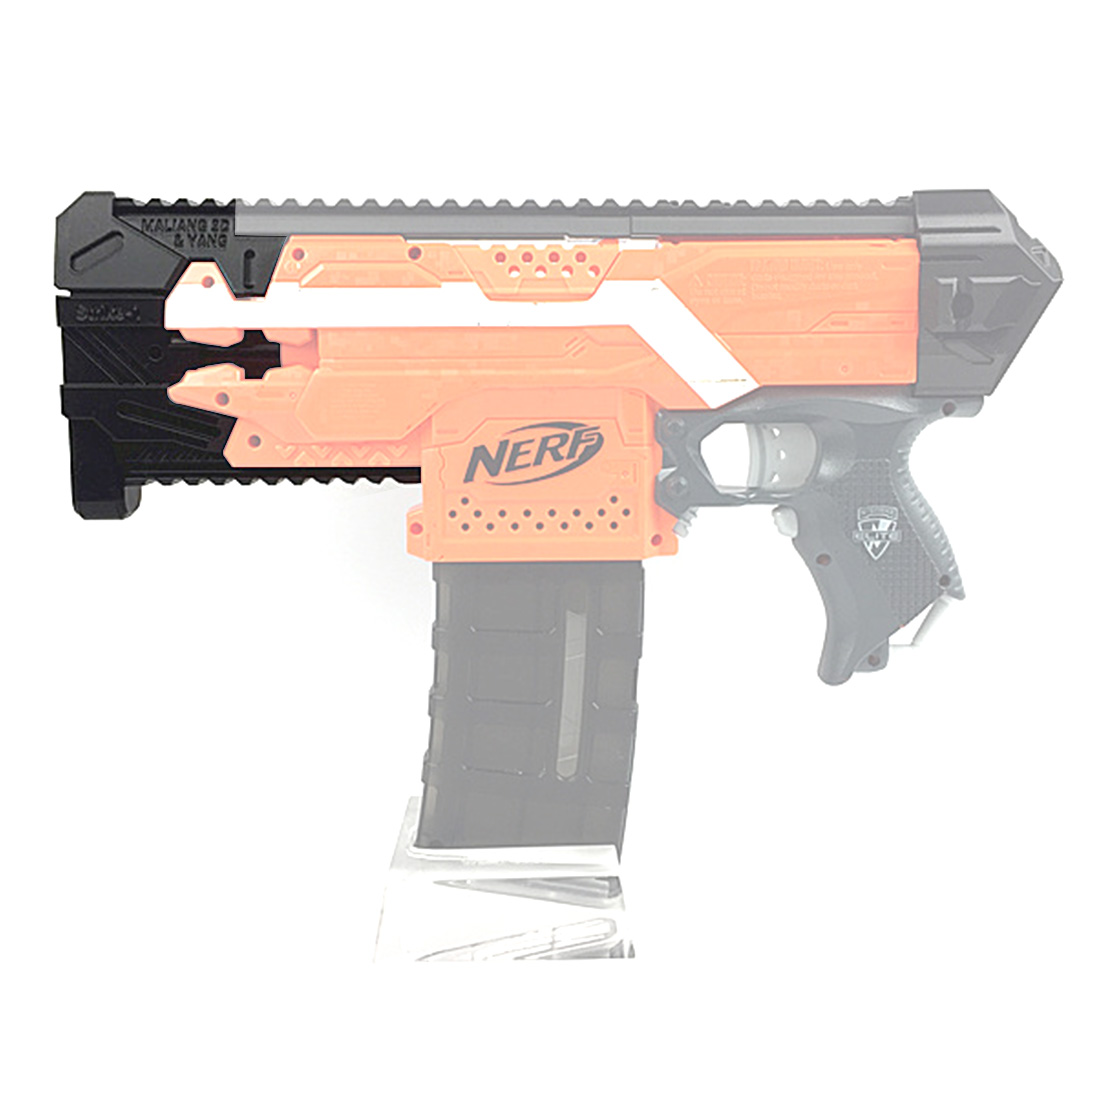 Maliang 3D Printing Modified Science Fiction Style S1 Front Tube for Nerf Stryfe maliang appearance modification 3d printing front tube a 3 0 decoration part for nerf zombie strike doublestrike blaster